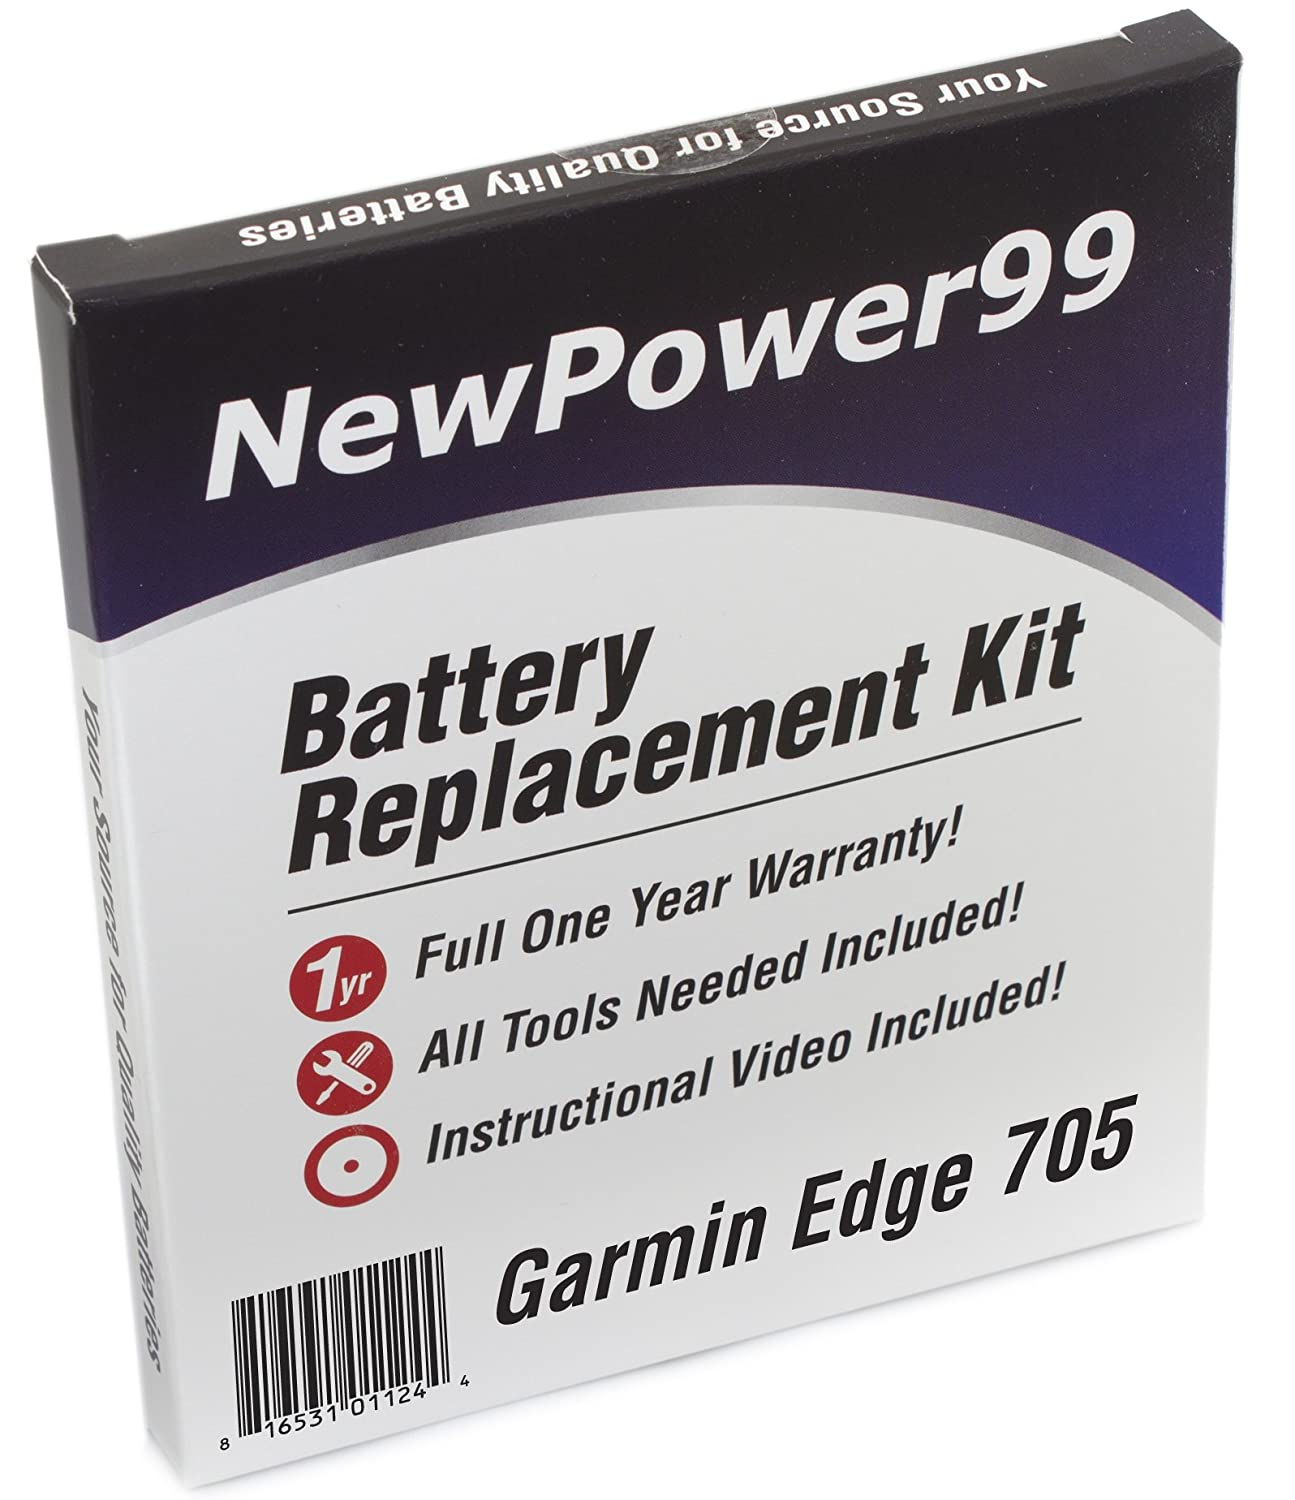 Battery Replacement Kit for Garmin Edge 705 with Installation Video, Tools, and Extended Life Battery. NewPower99